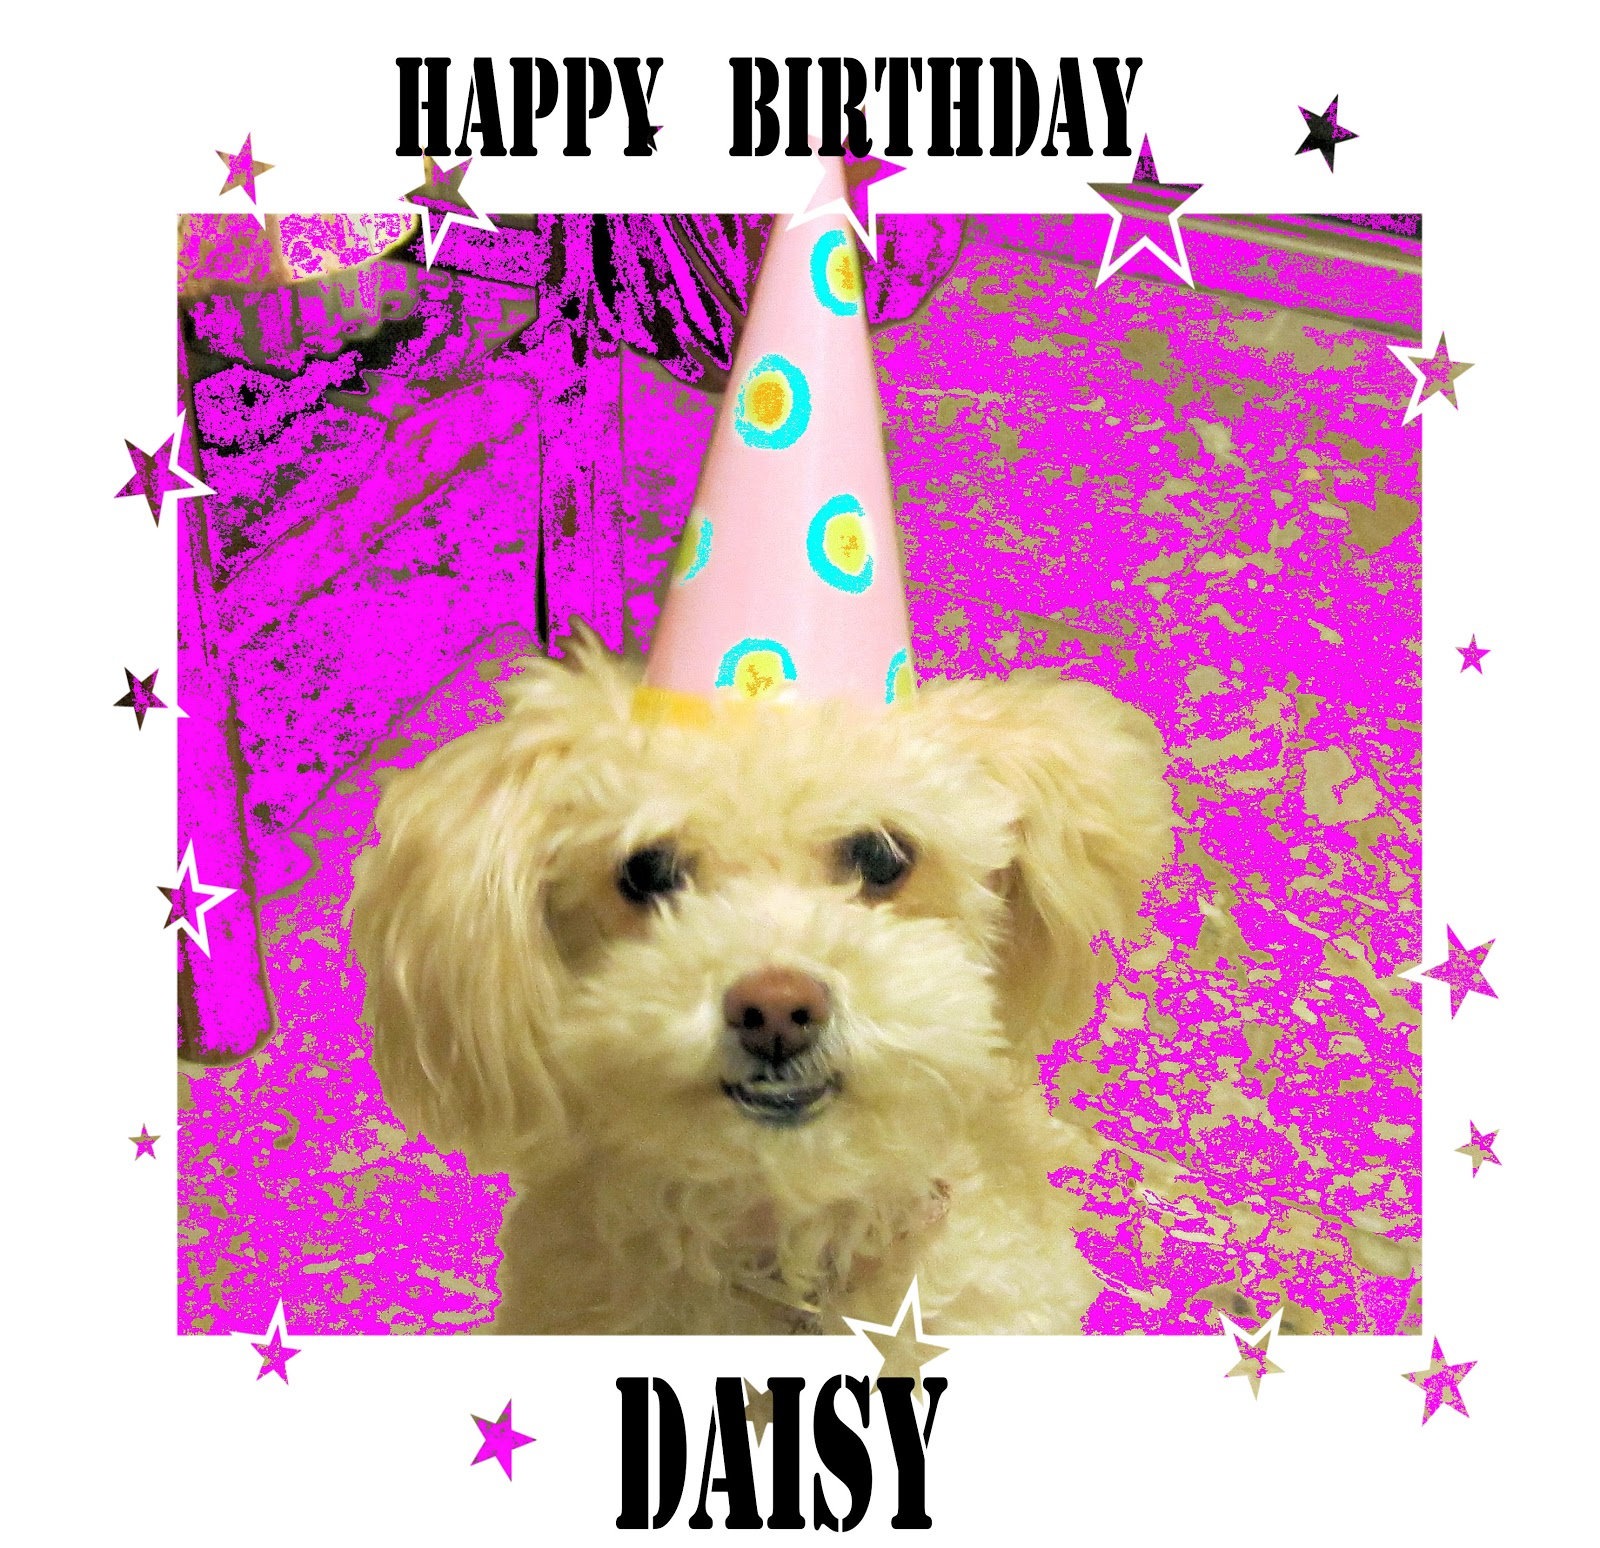 happy birthday daisy ; daisy+2013